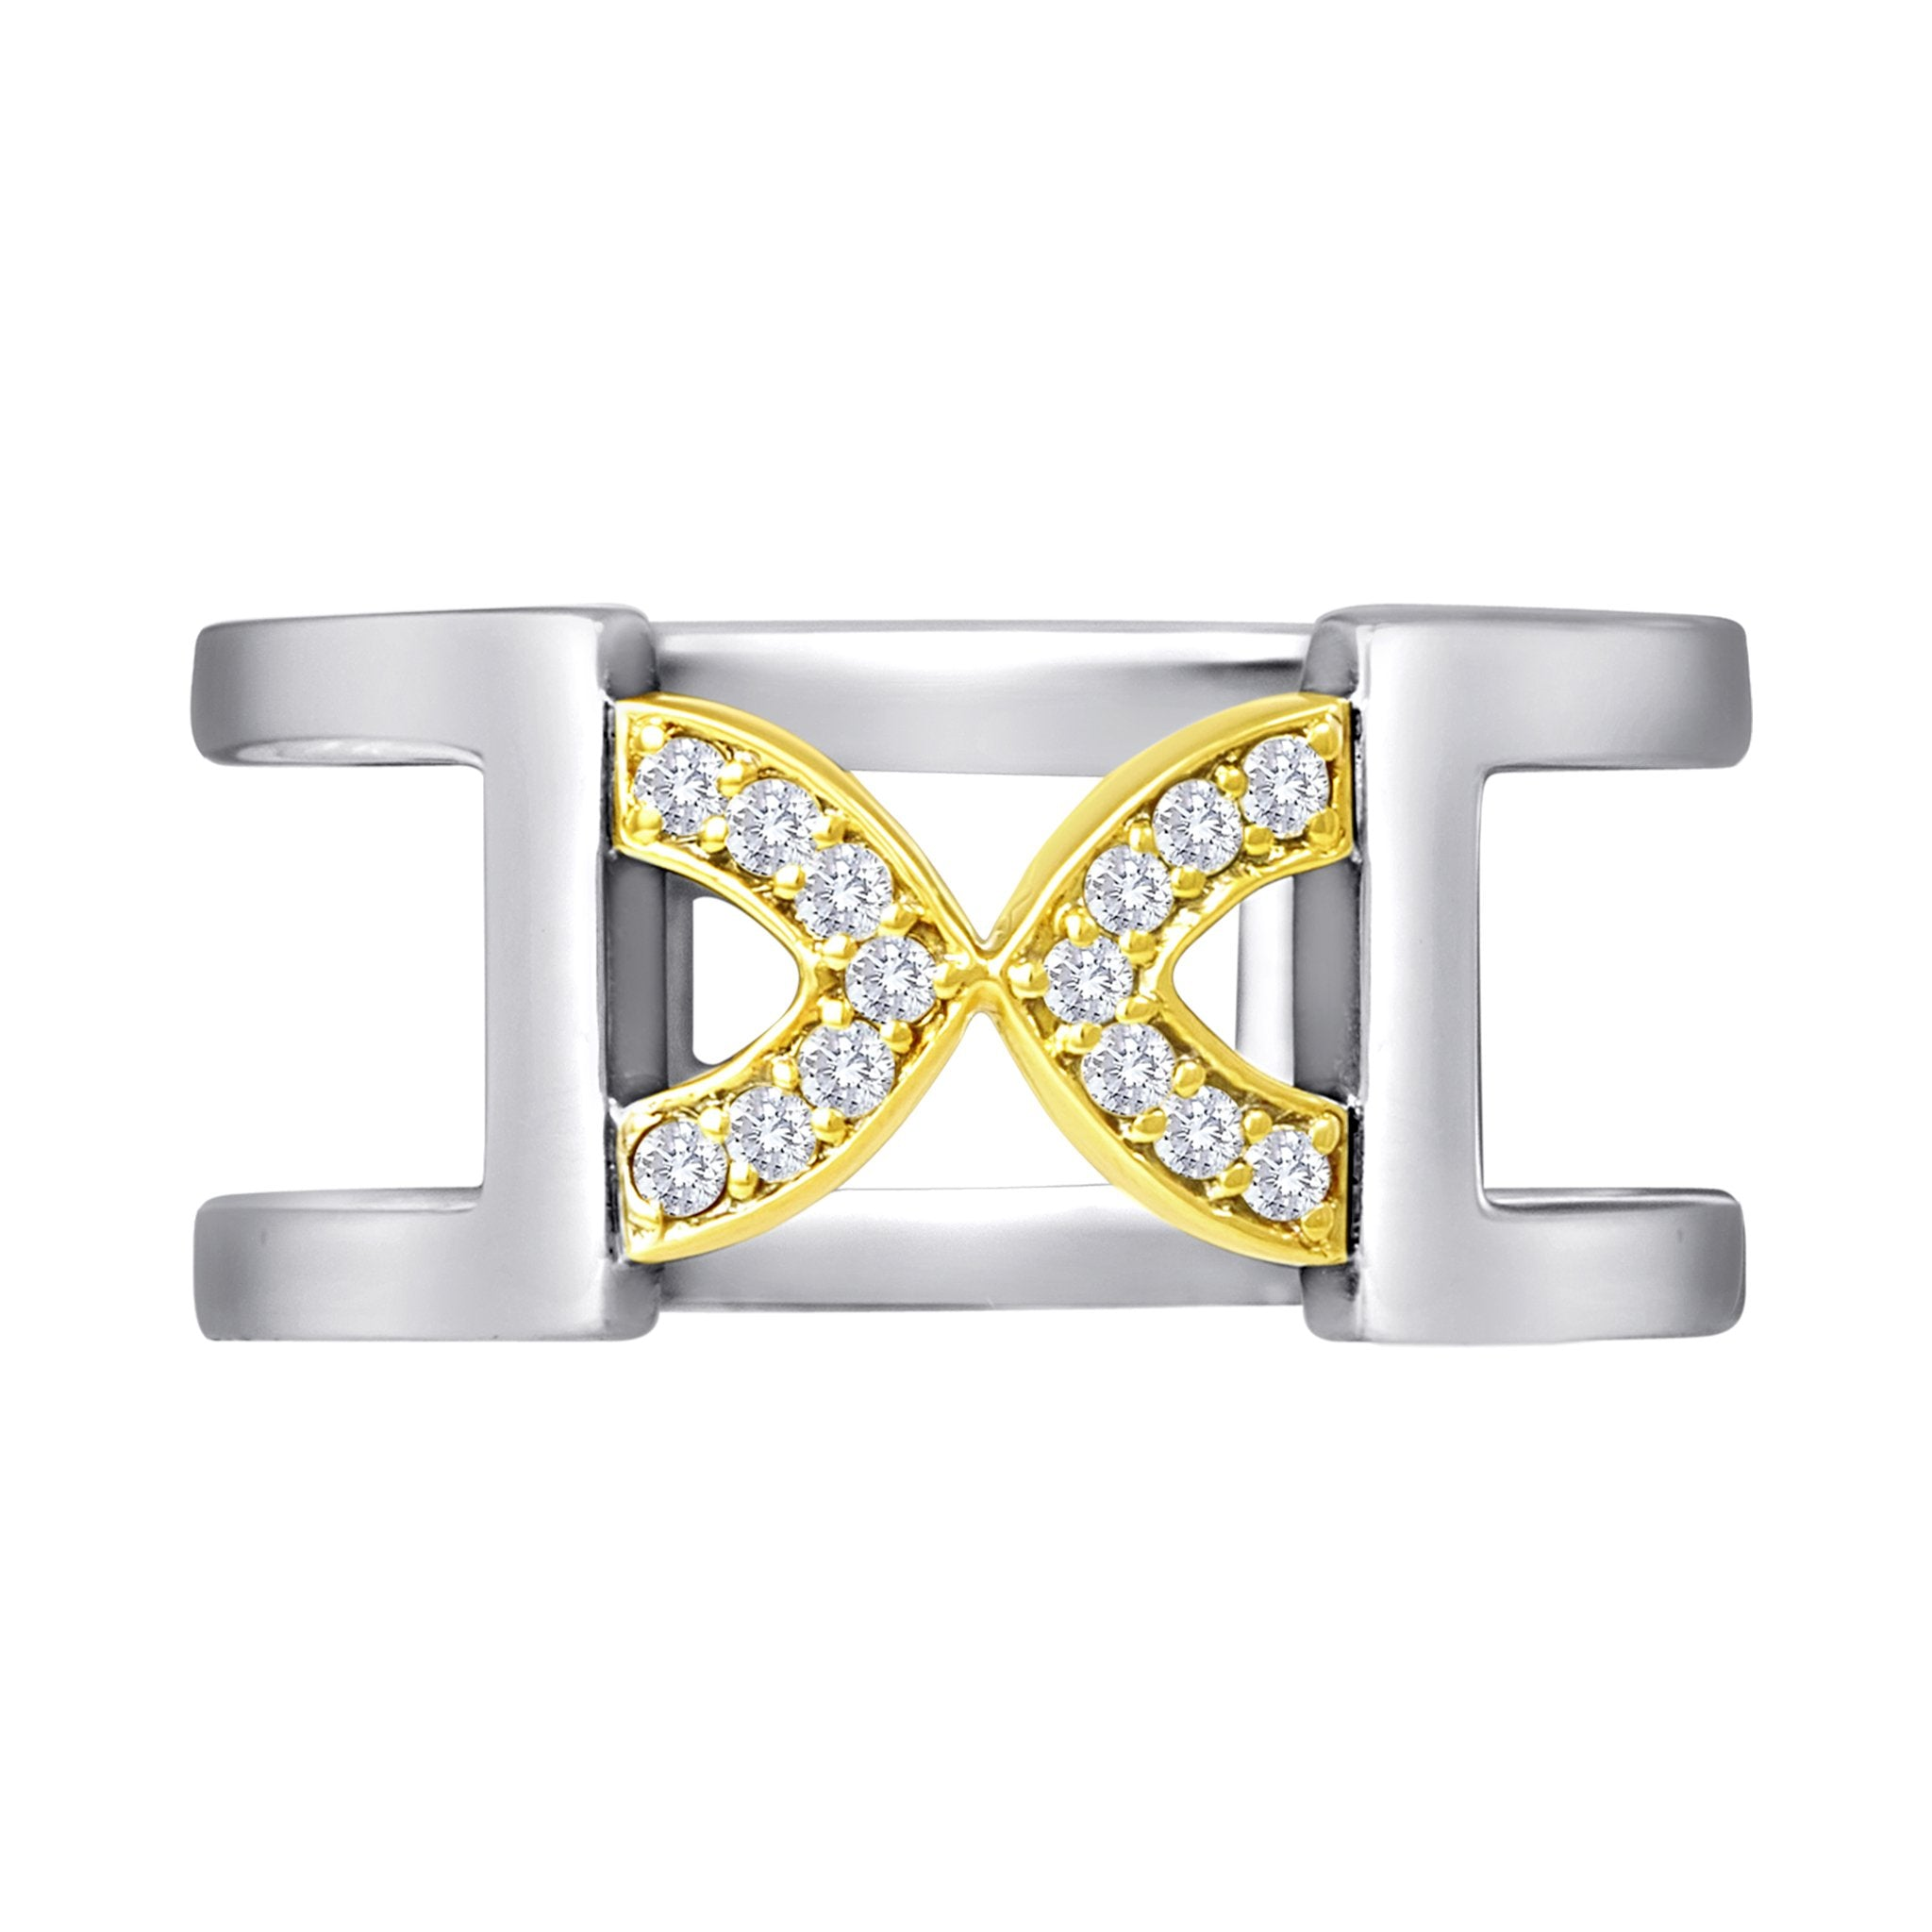 Band Ring: 18k Gold, Silver, Diamonds